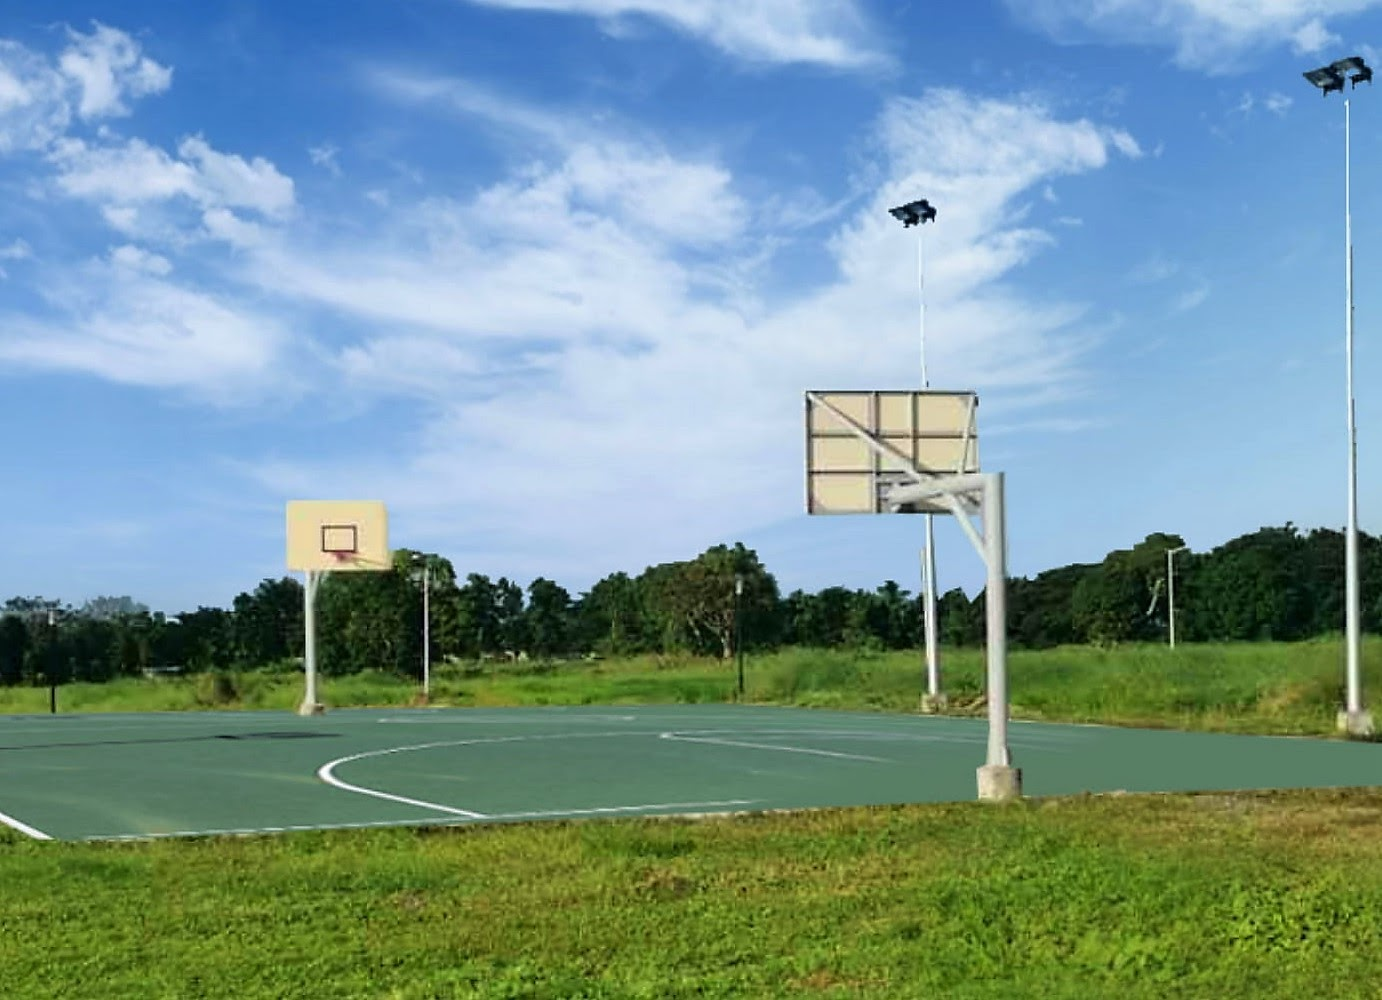 Fern Parc, Metrogate Silang Estates actual photo of the basketball court